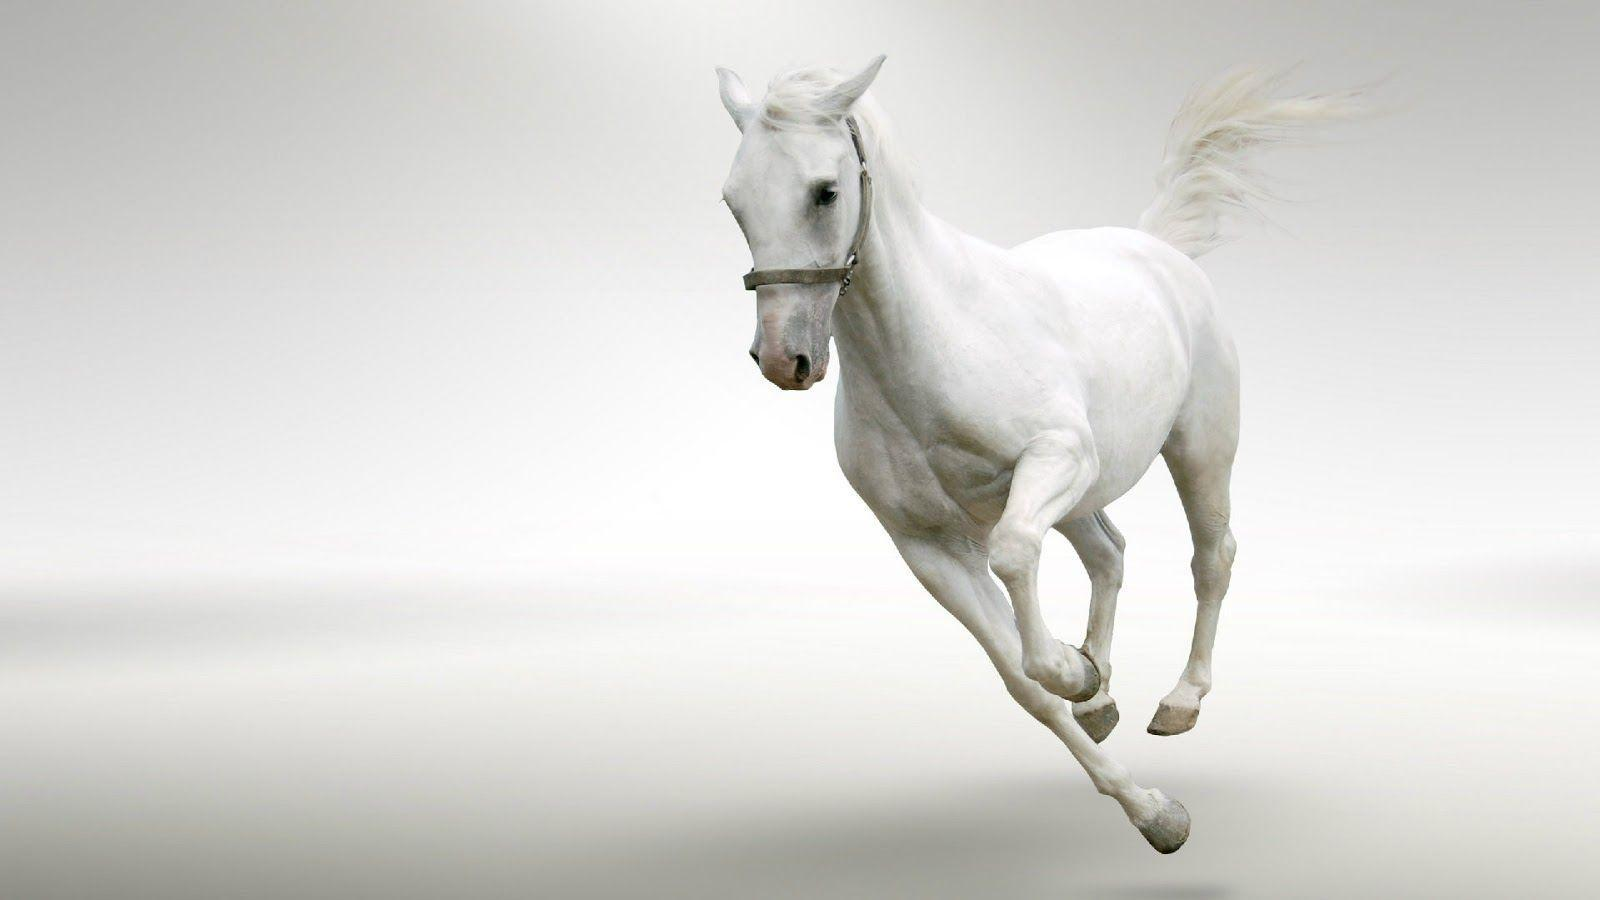 Running White Horse In Snow wallpapers